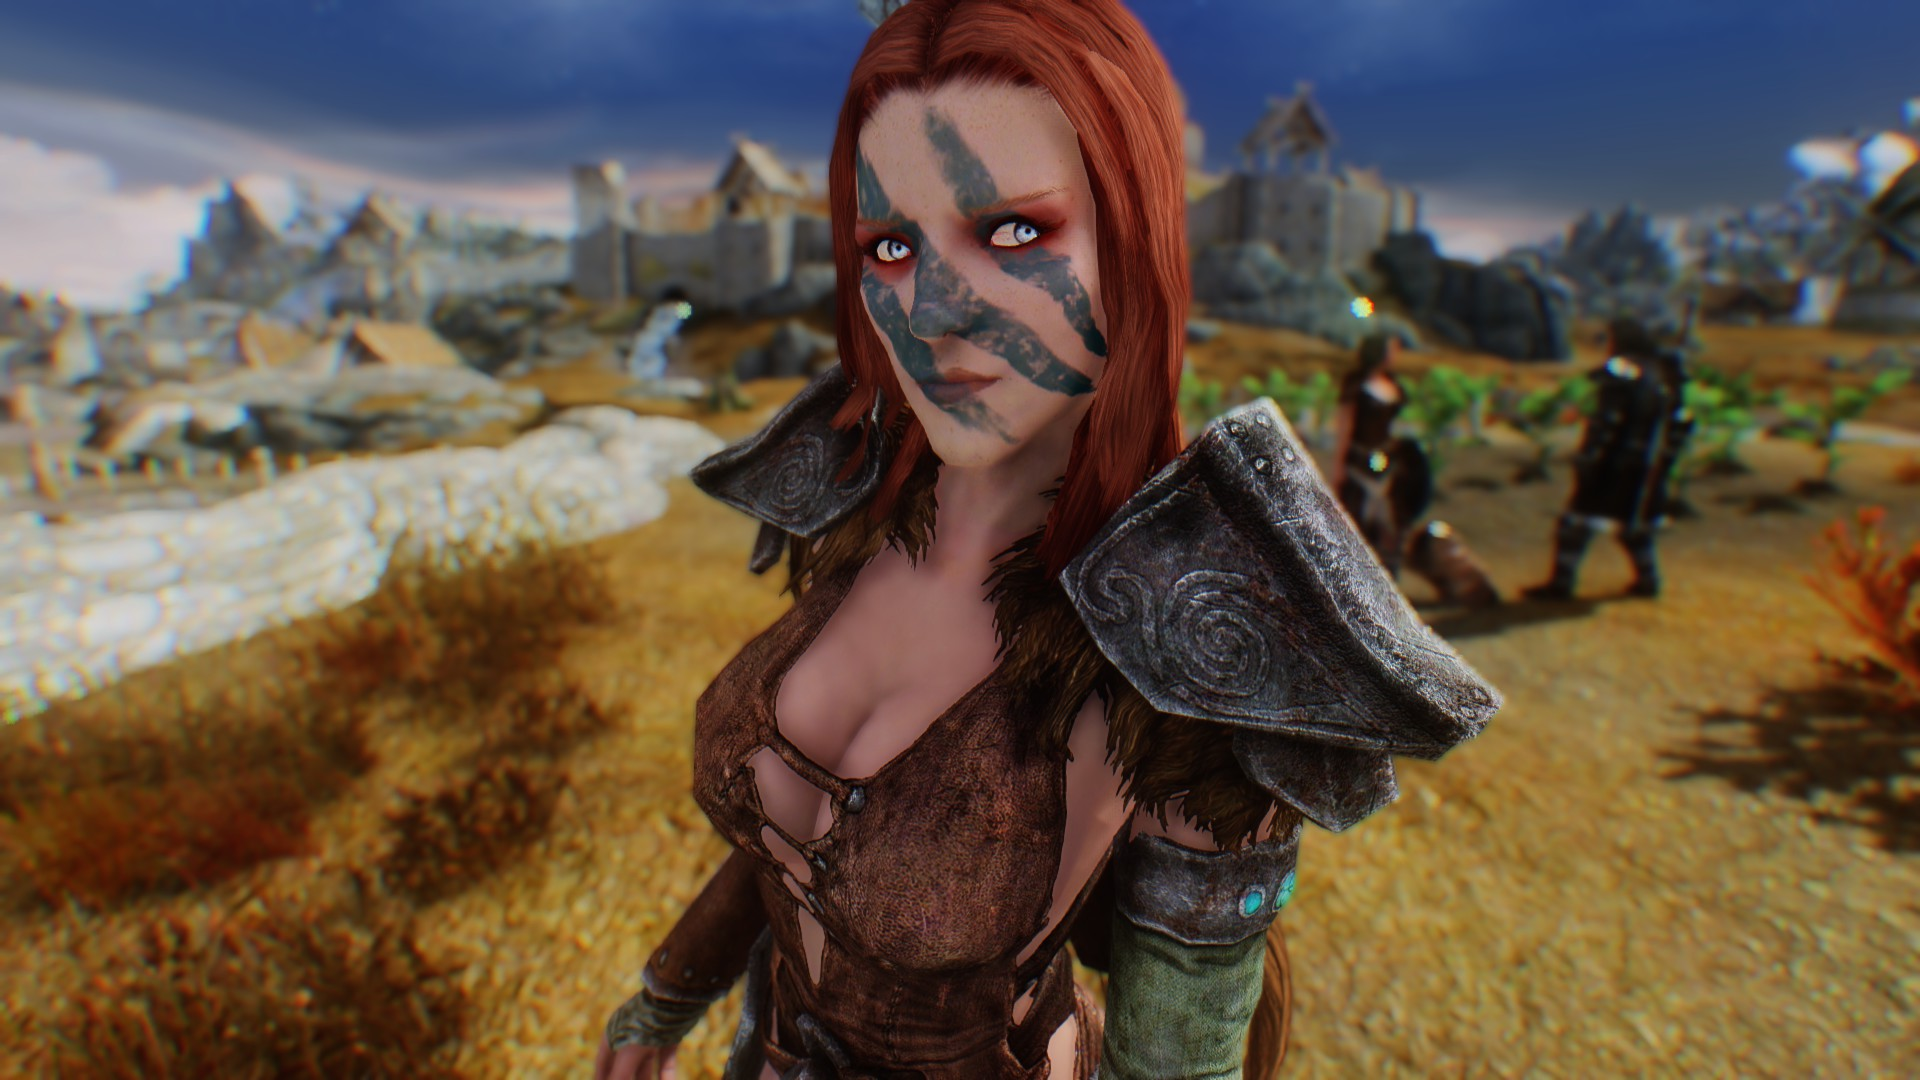 Aela has beautifull eyes